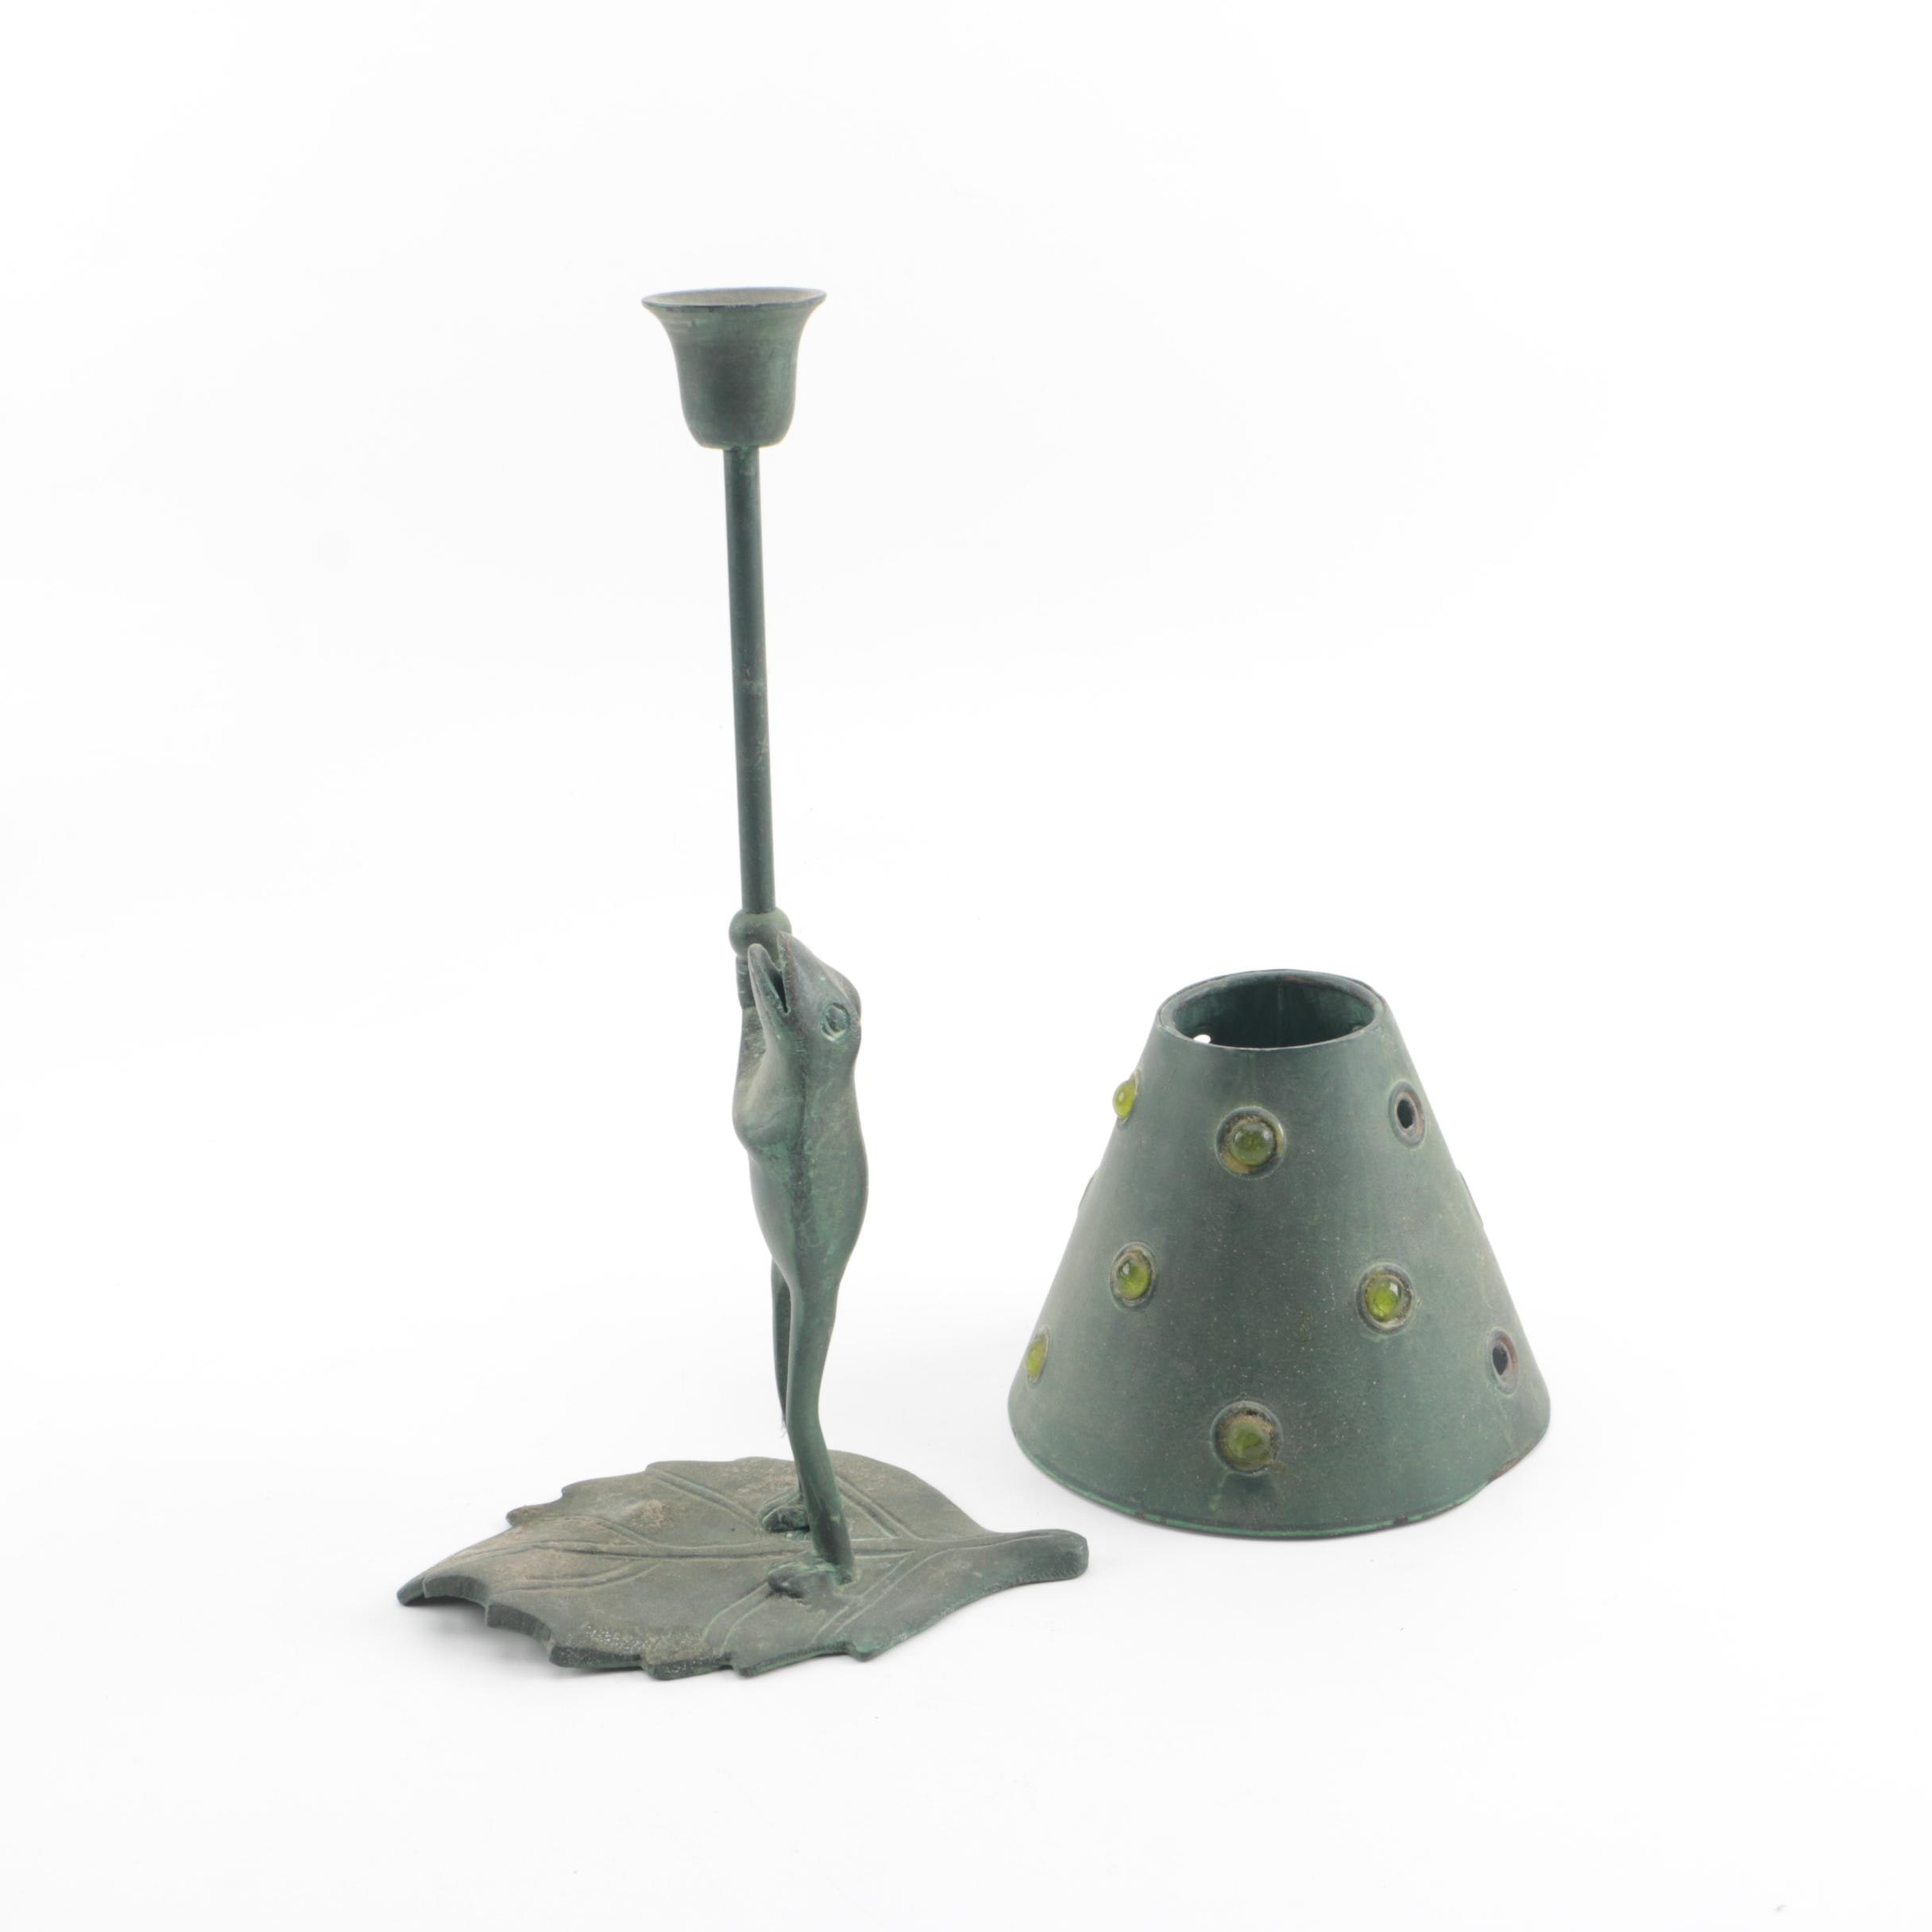 Metal Frog Candle Holder and Shade with Verdigris Wash